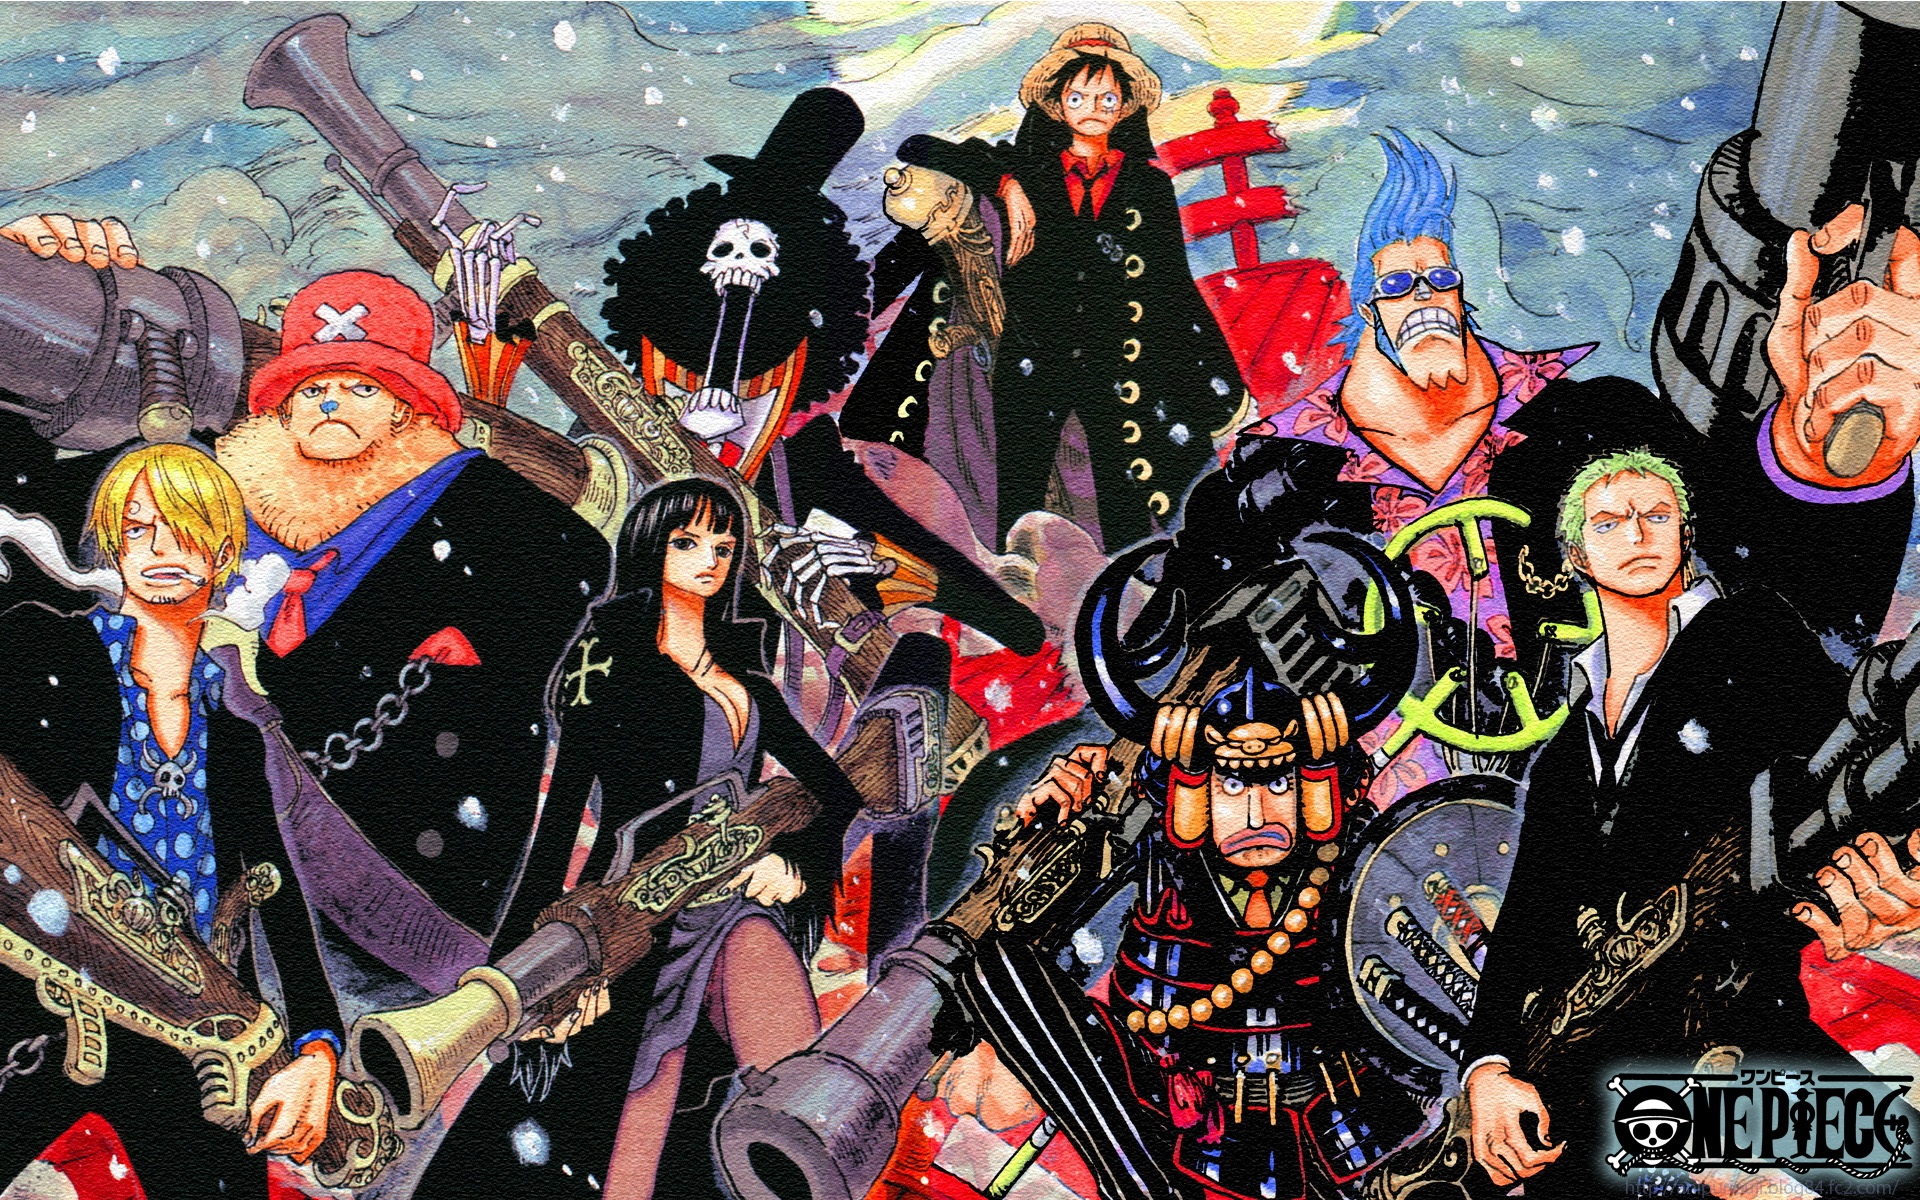 Wallpaper One Piece Classic Anime 1920x1200 Hd Picture Image